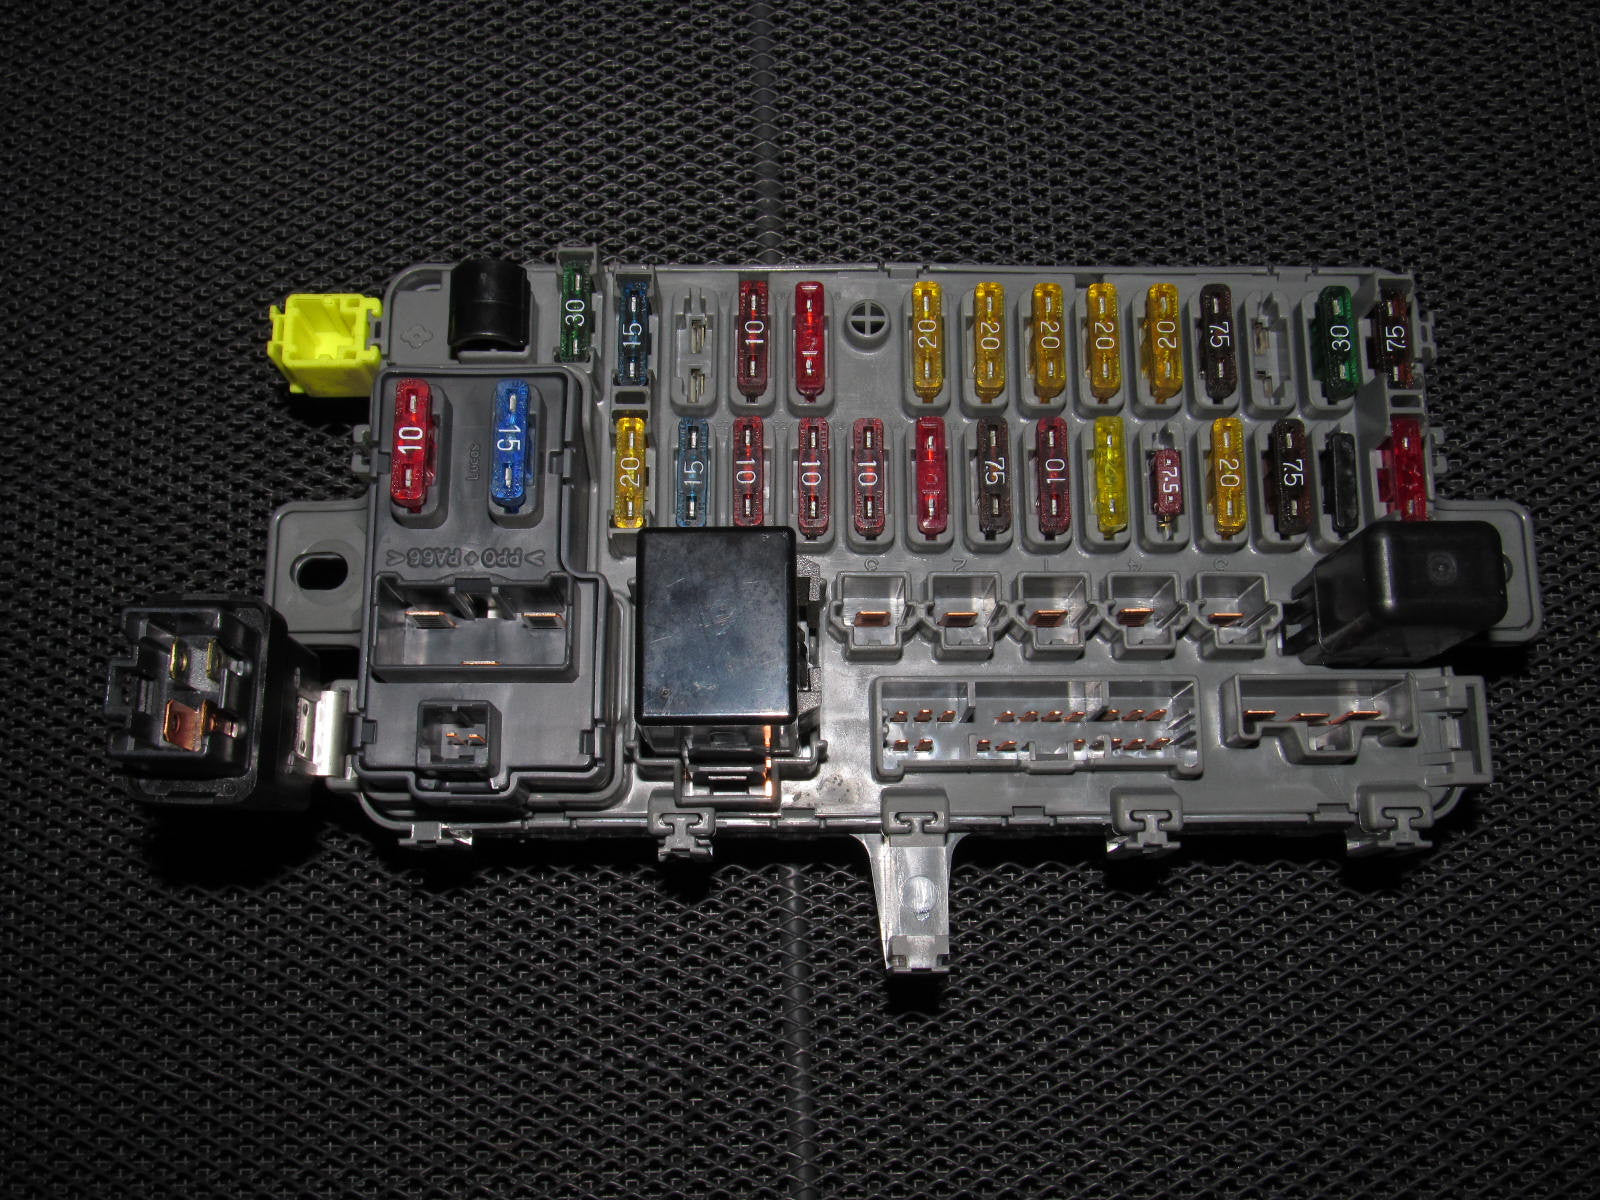 92 acura fuse box wiring diagram todays rh 1 10 12 1813weddingbarn com 92 acura vigor fuse box diagram 96 Acura